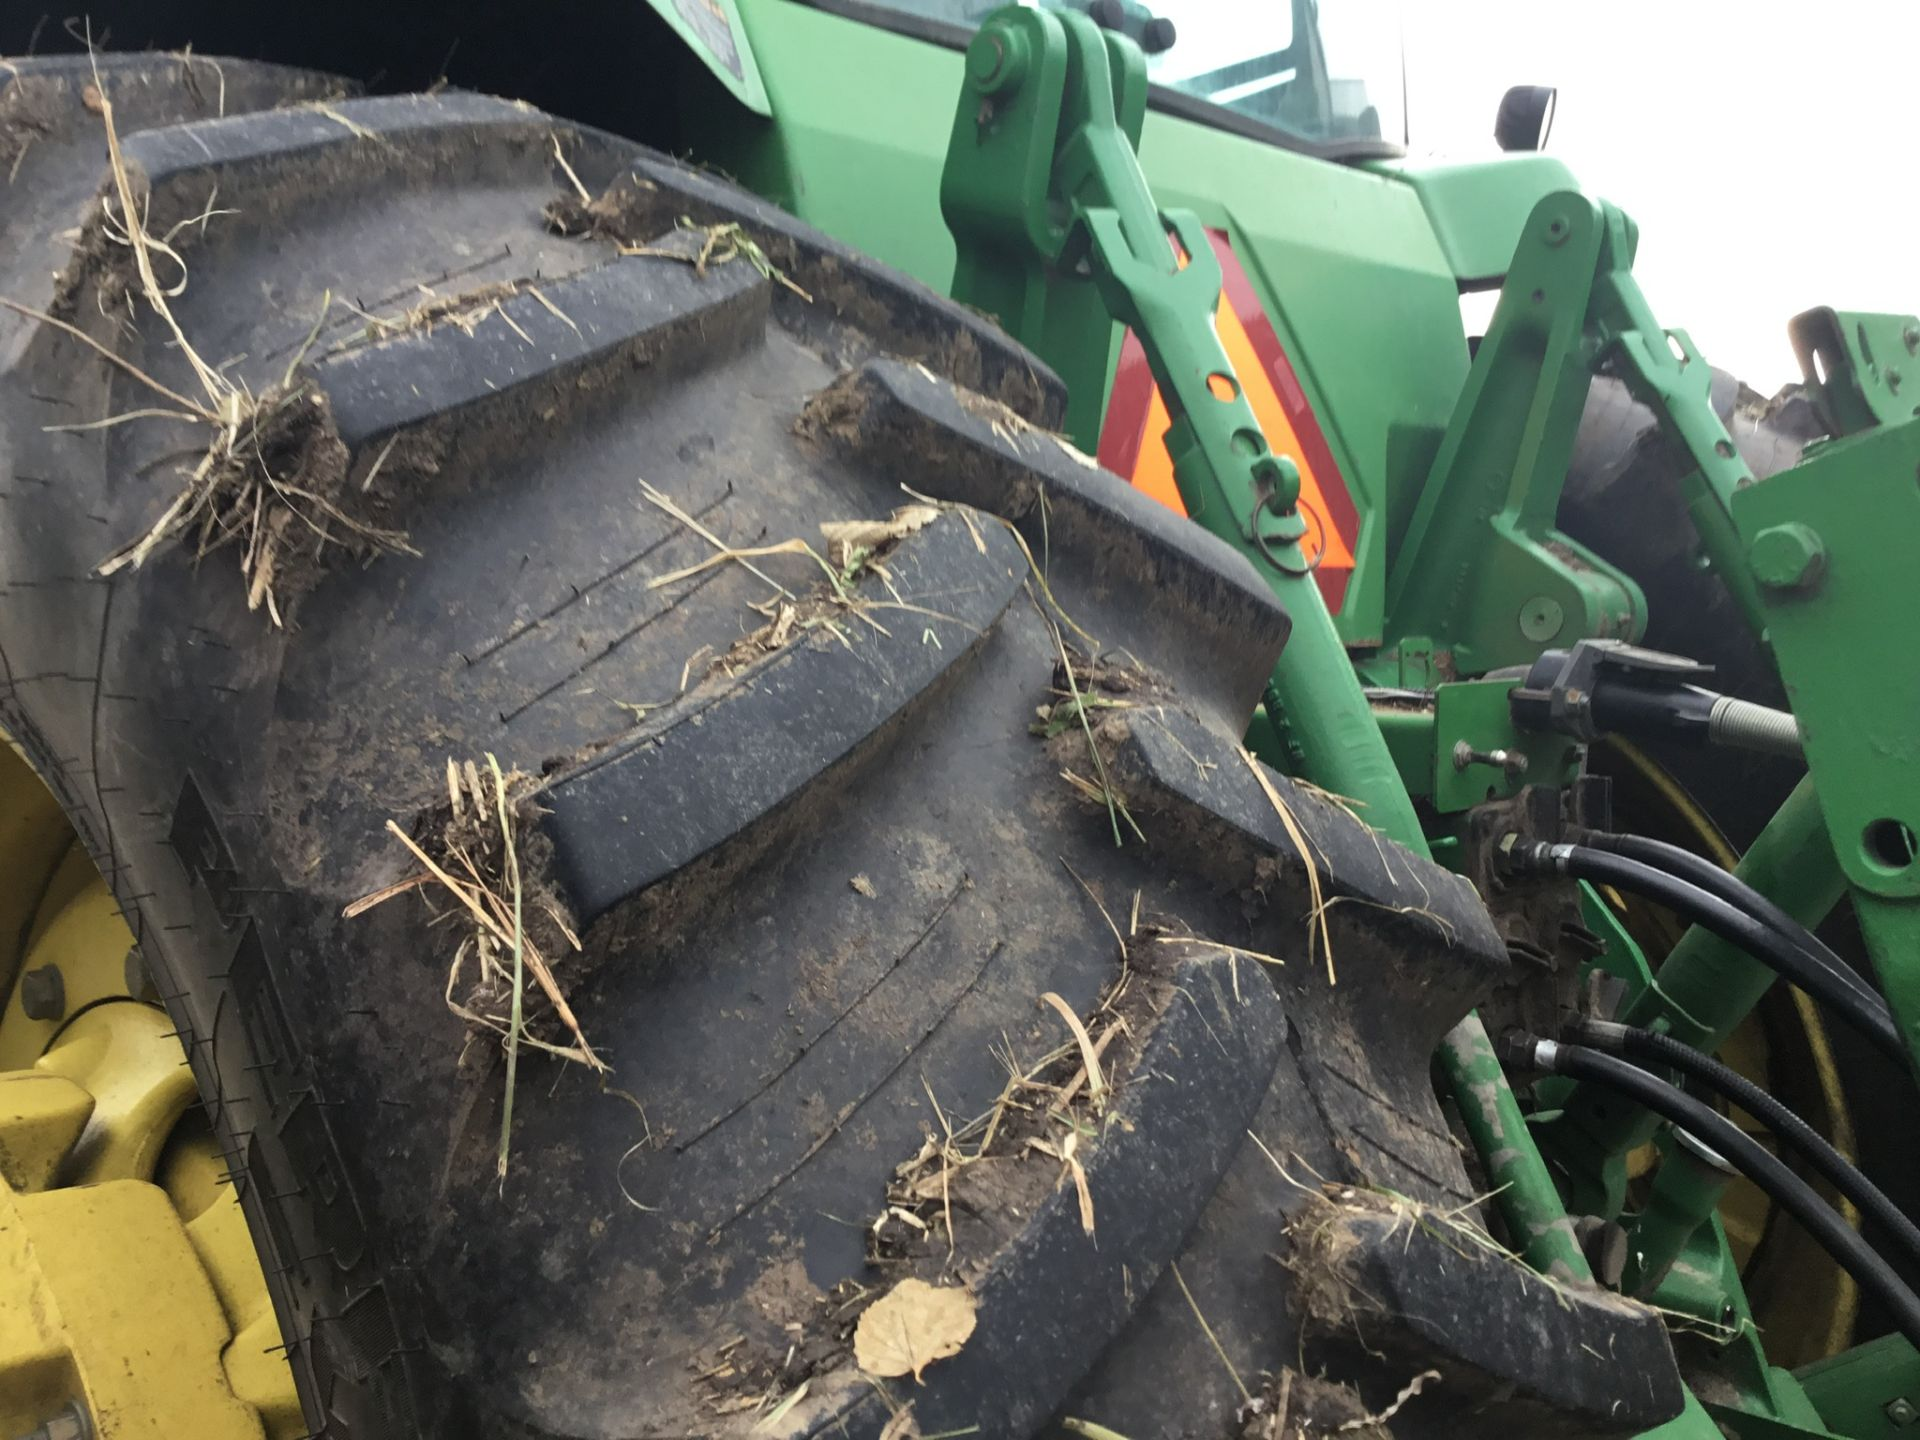 1997 John Deere 8300 MFWD, Power Shift, 3 Hydraulic Remotes, 3 Pt., Quick Hitch, PTO, Green Star - Image 5 of 25